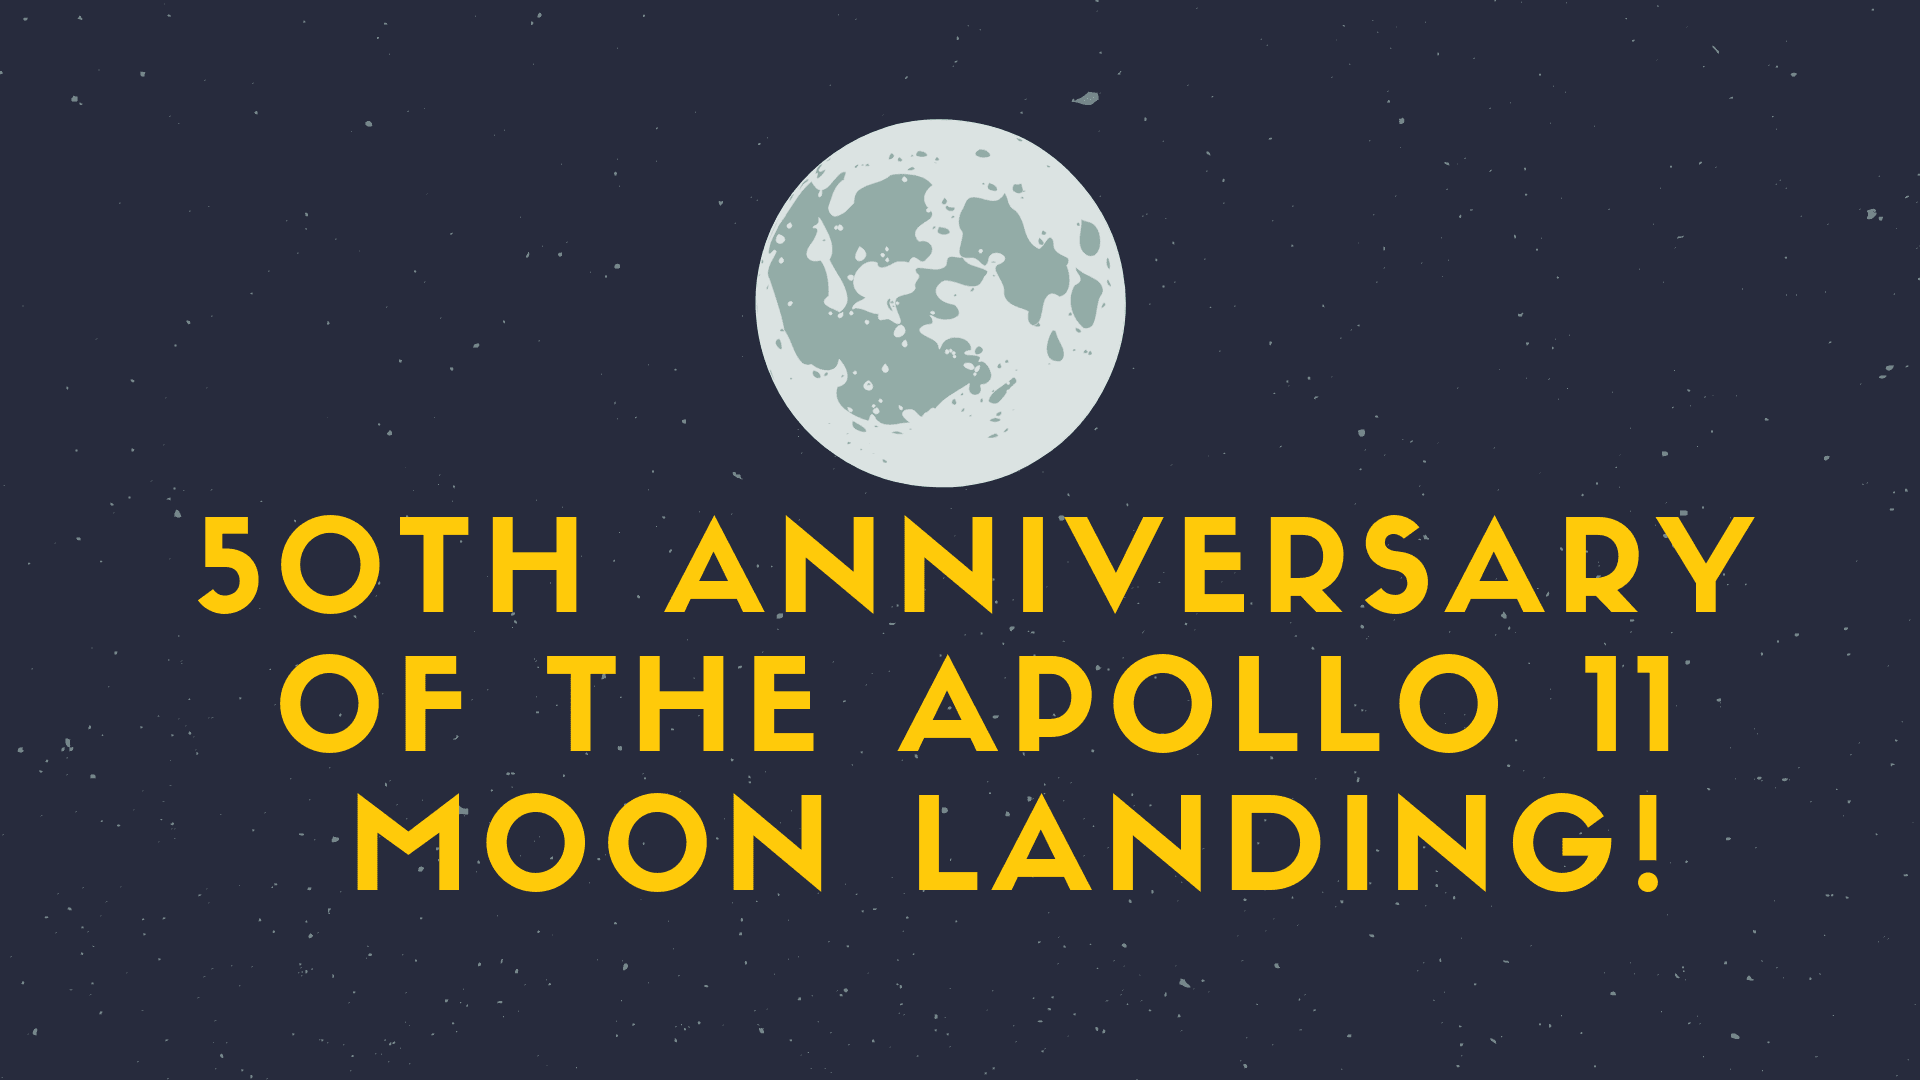 50th Anniversary of the apollo 11 moon landing (1)